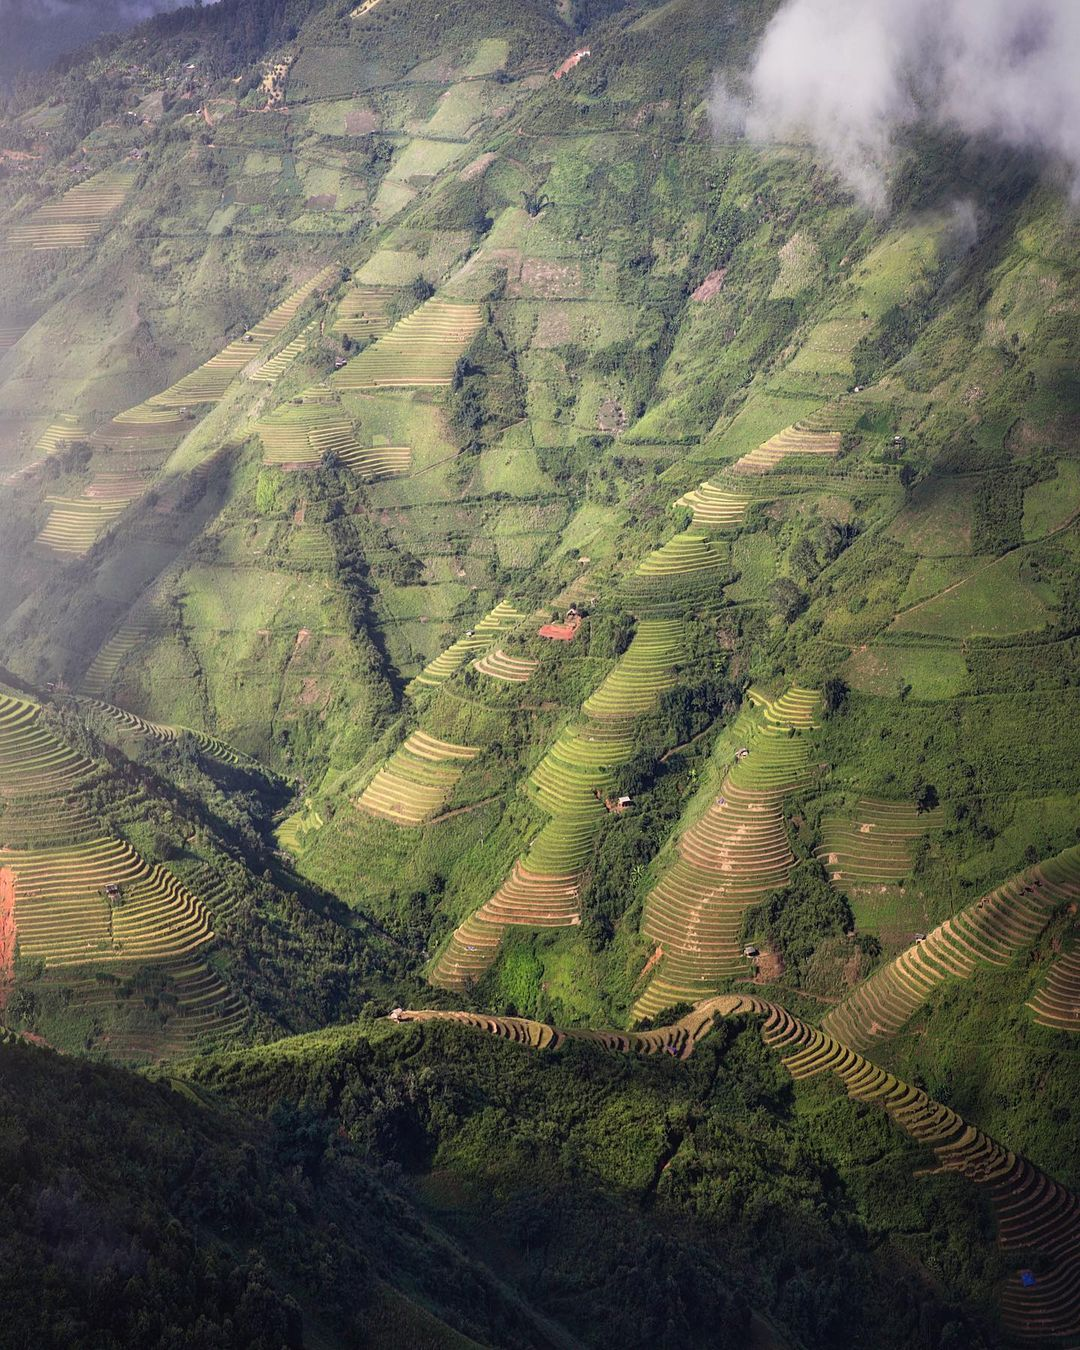 Rice terraces in Mu Cang Chai captured by Indra